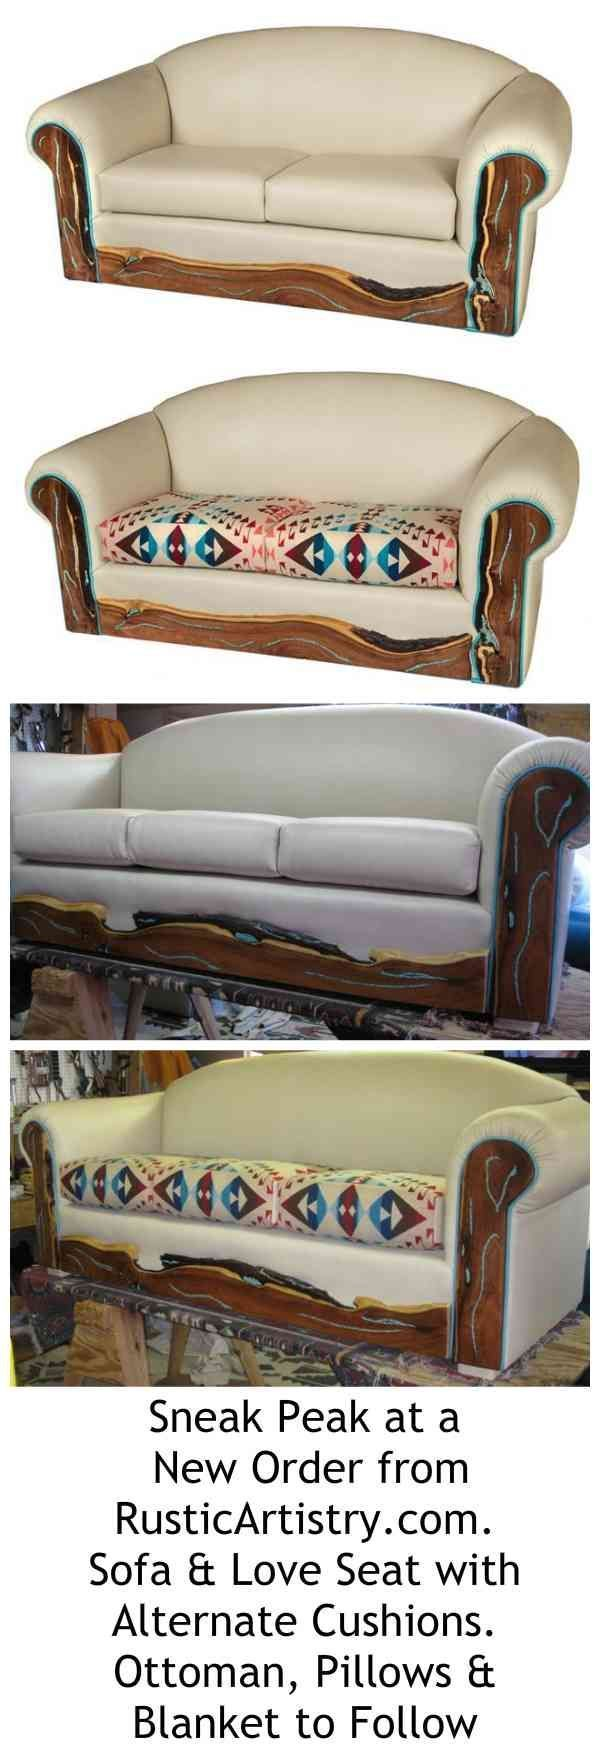 Rustic Cabin Decor -  Sofa and love seat have both leather and Pendleton cushions as alternate. Kick plate is live edge mesquite inlaid with Sleeping Beauty turquoise.